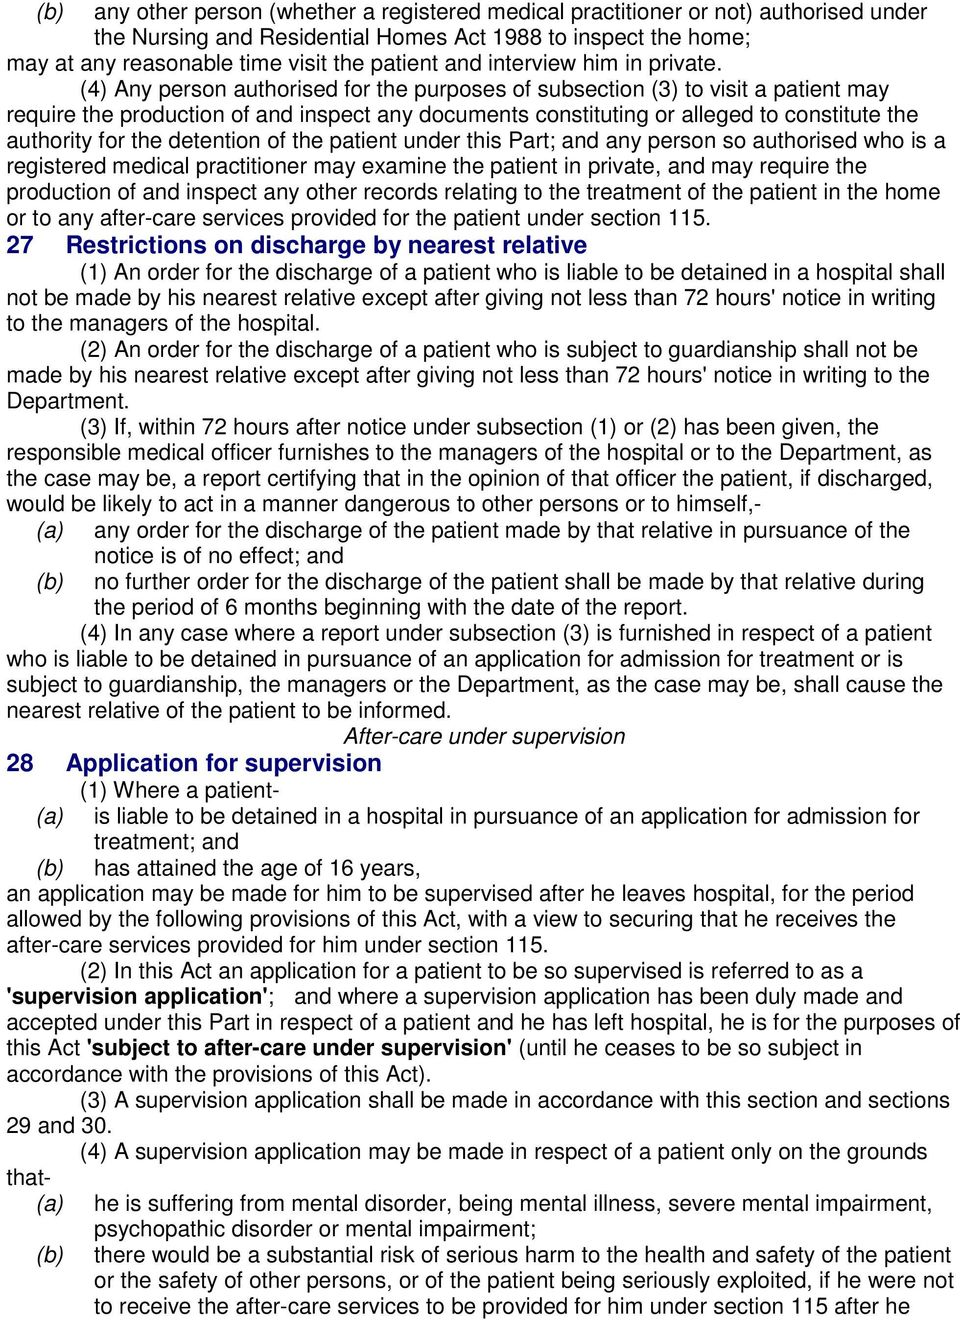 (4) Any person authorised for the purposes of subsection (3) to visit a patient may require the production of and inspect any documents constituting or alleged to constitute the authority for the